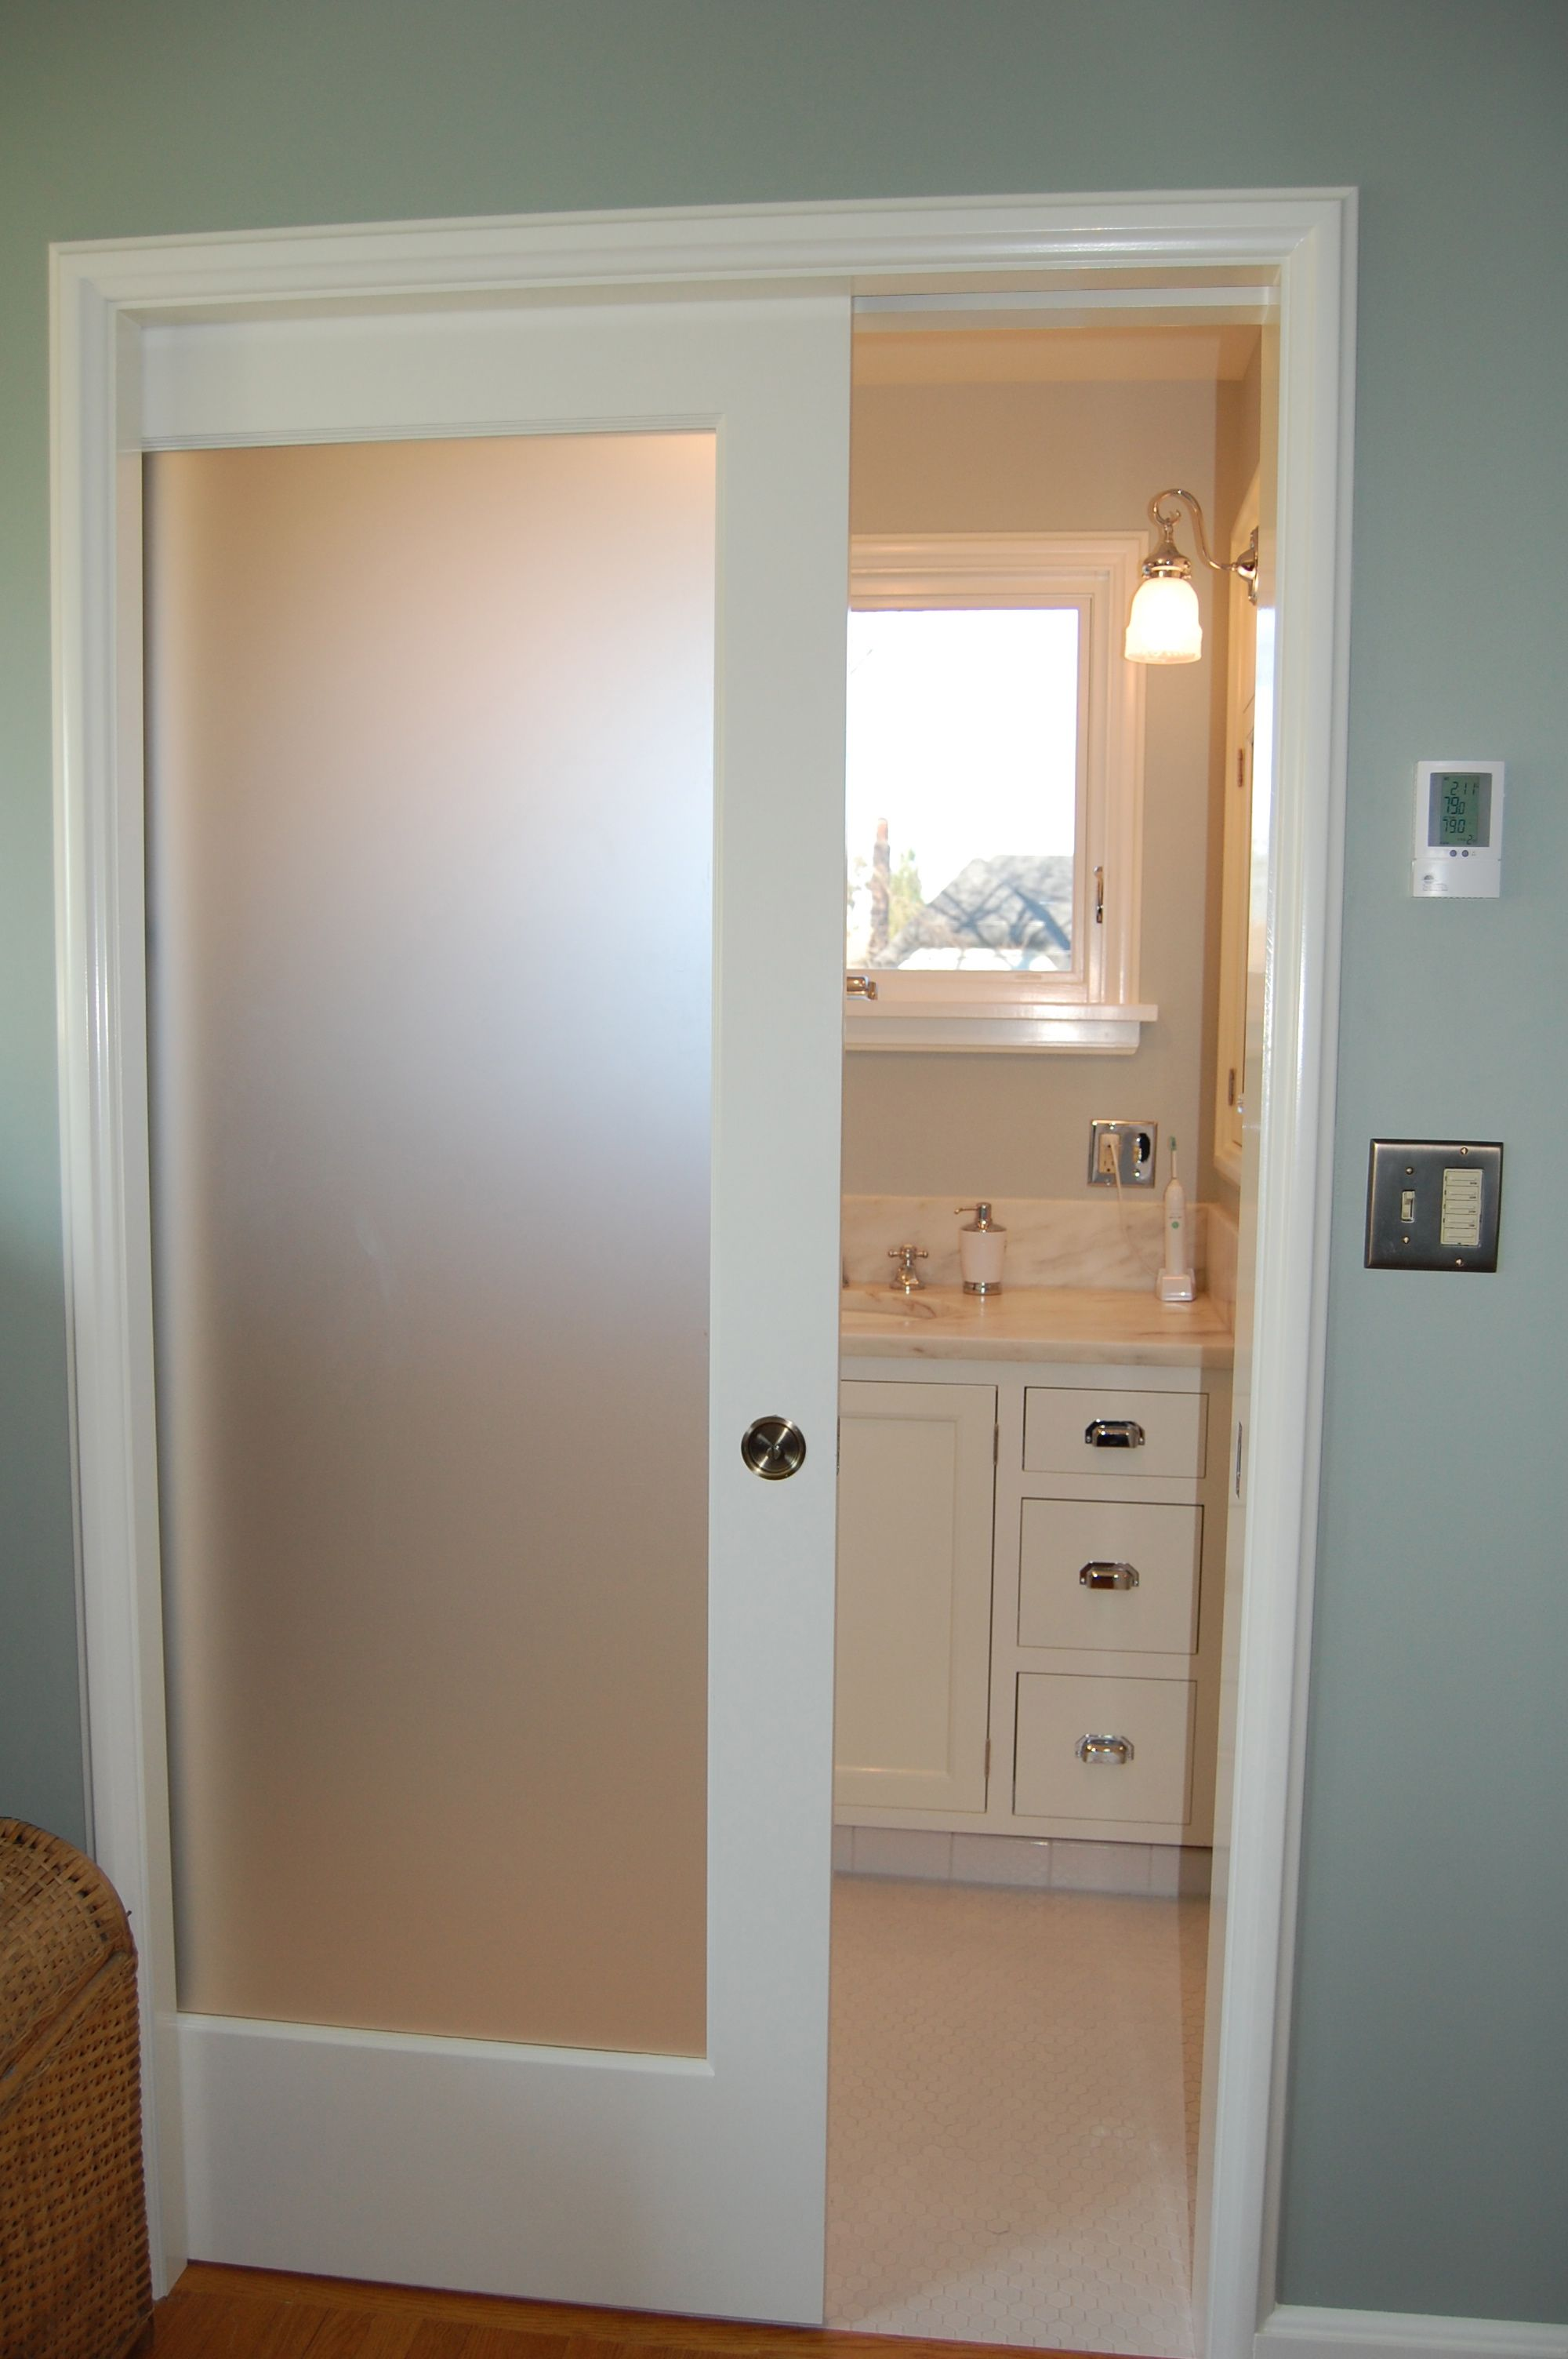 Rain Glass Bathroom Window Alameda Remodel Is Complete Pocket Doors Doors And Glass